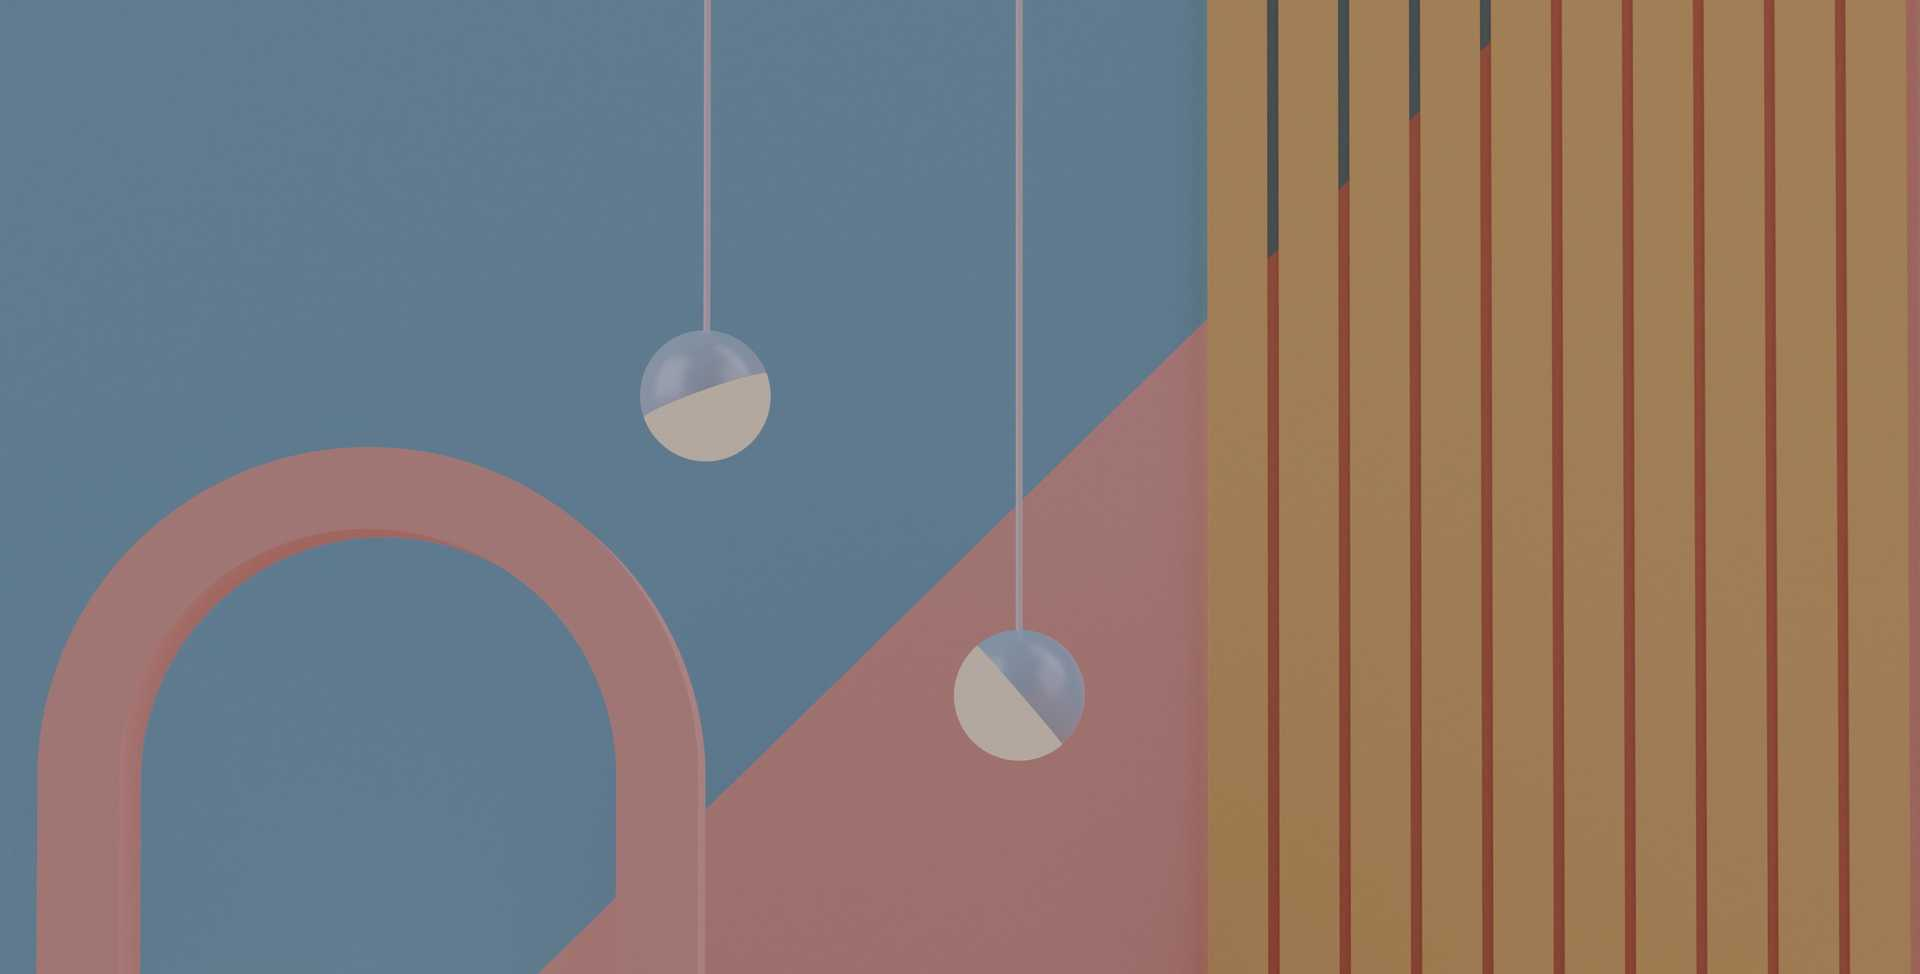 Abstract image in slate blue, desert pink, and yellow shapes